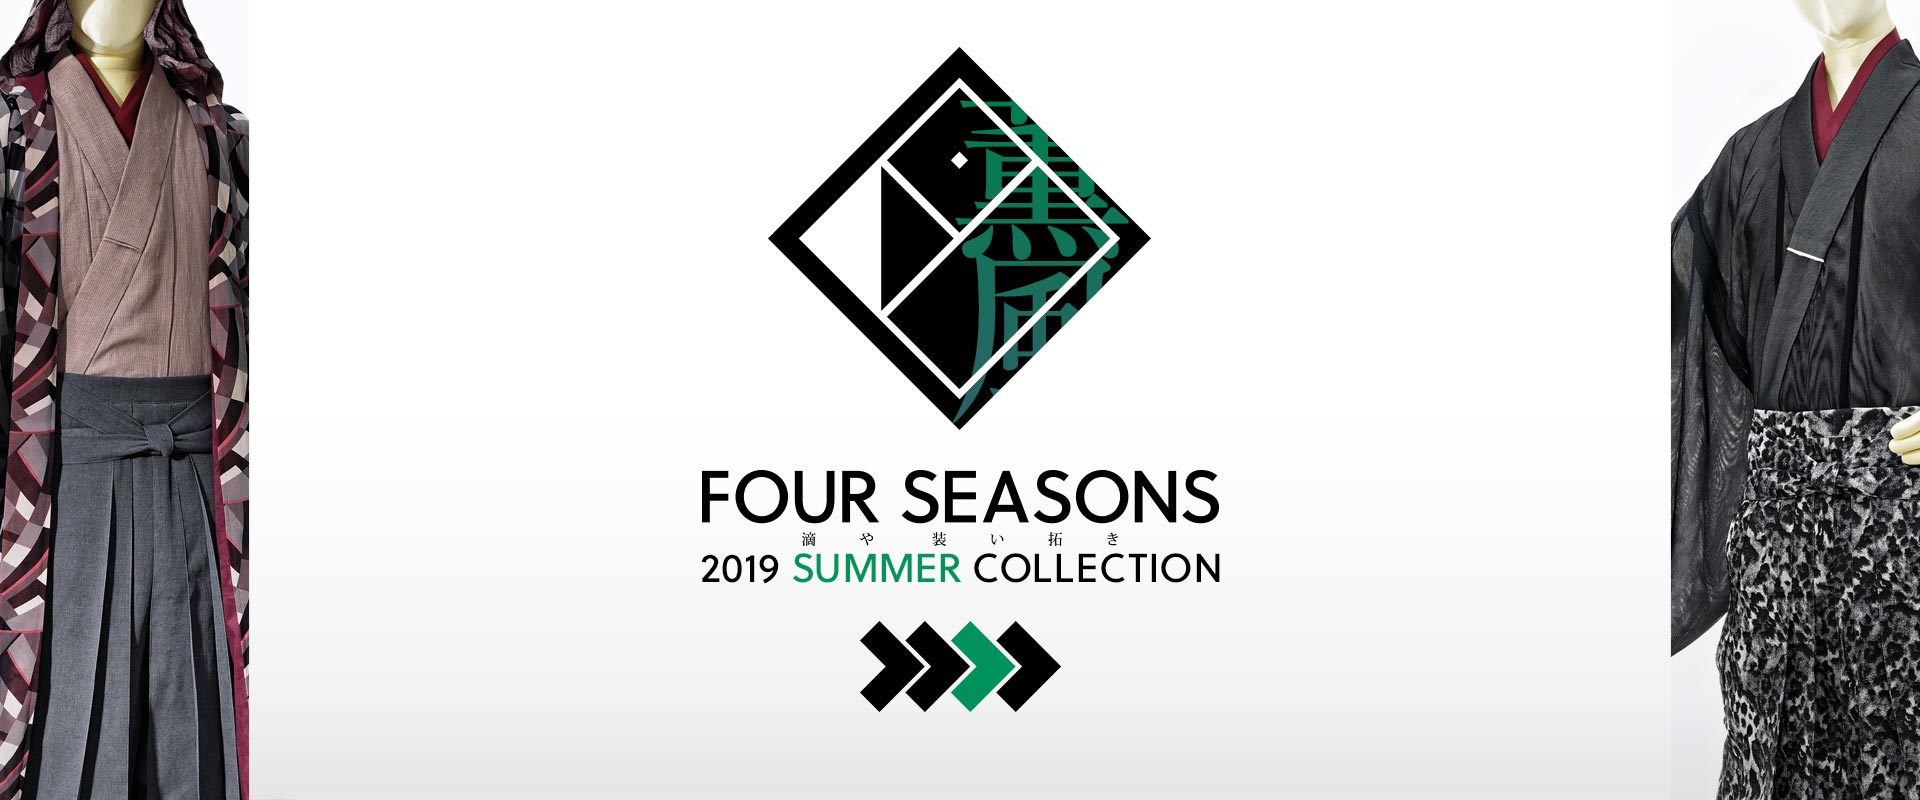 [PHOTO:FOUR SEASONS 2019 SUMMER COLLECTION]